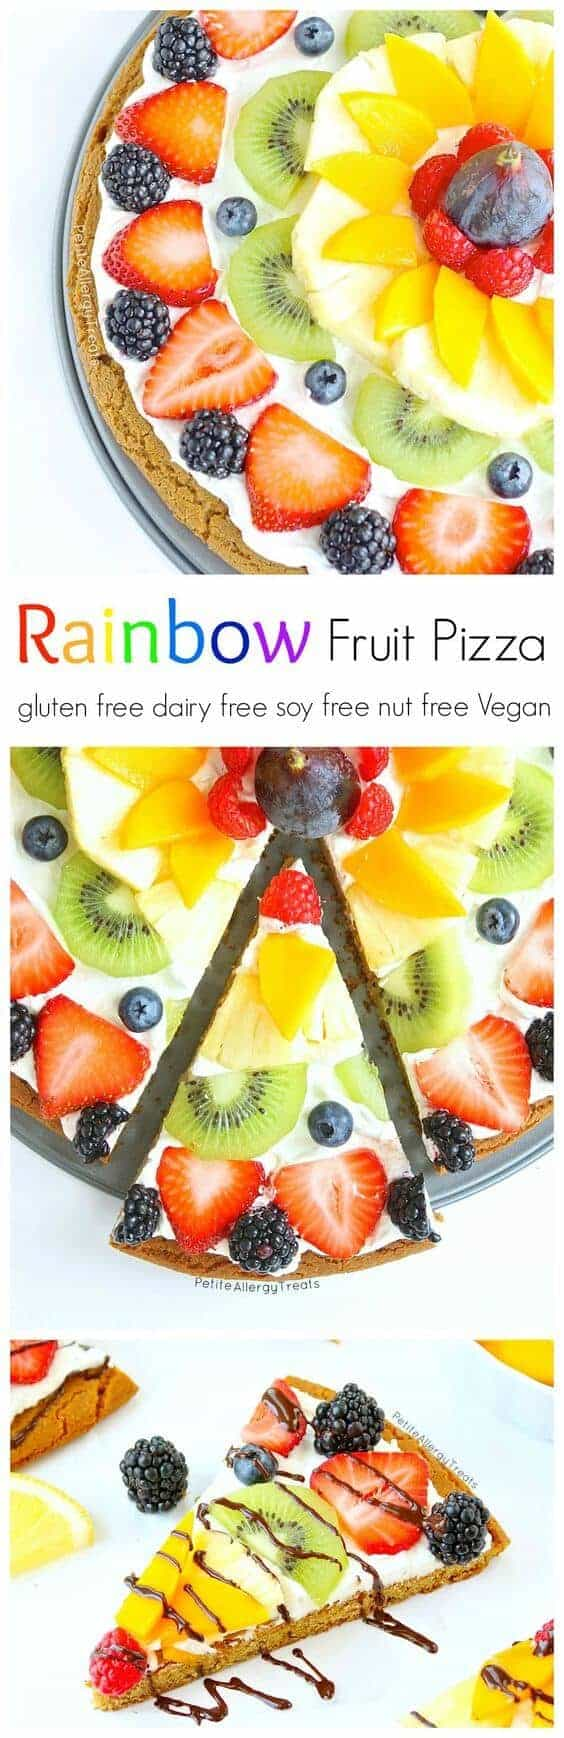 Gluten Free Vegan Fruit Pizza by Petite Allergy Treats